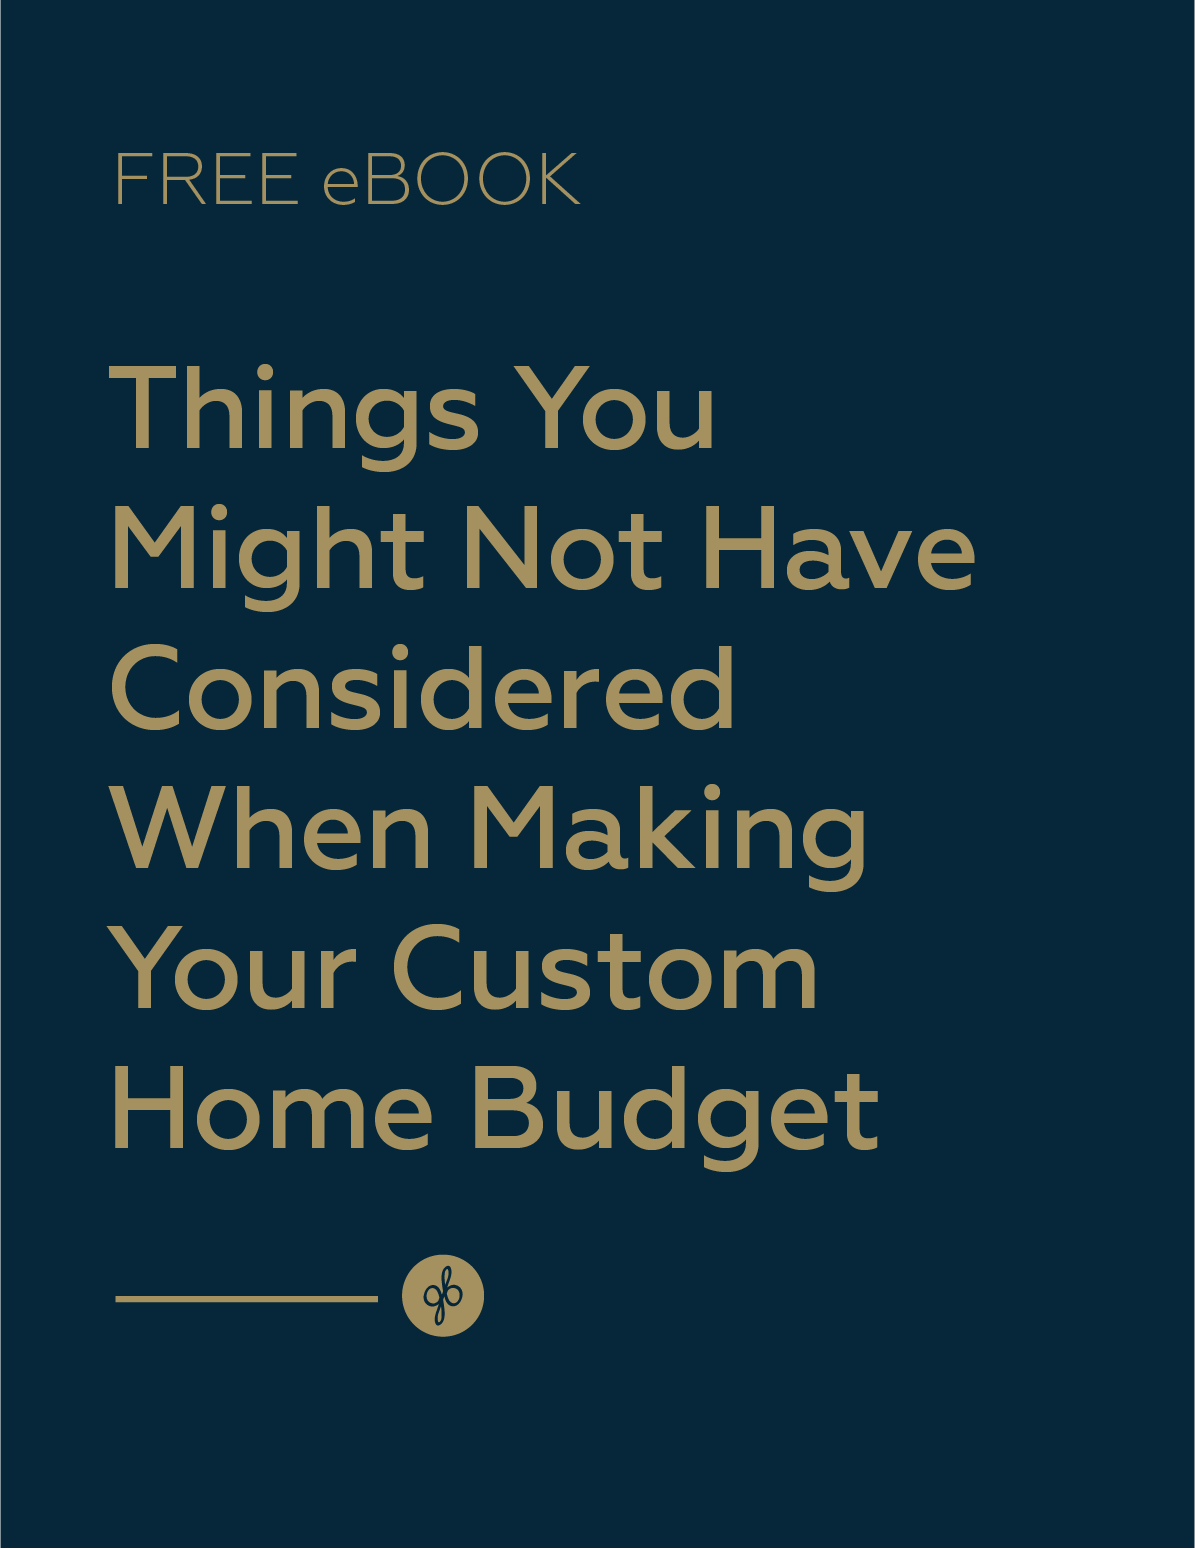 guide for making custom home budget free ebook